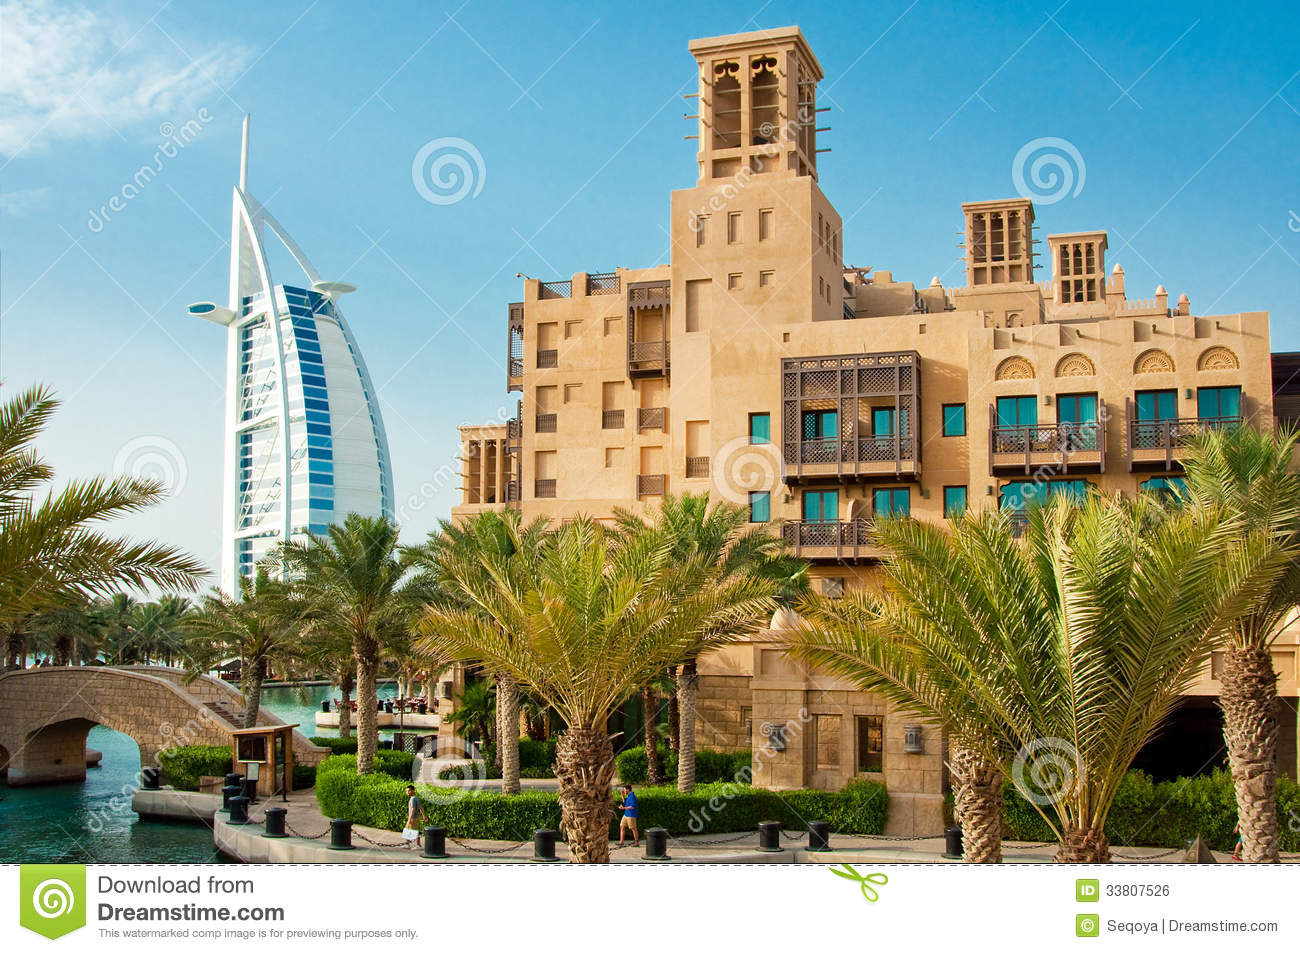 Dubai june 3 the famous hotel and tourist district for Dubai famous hotel